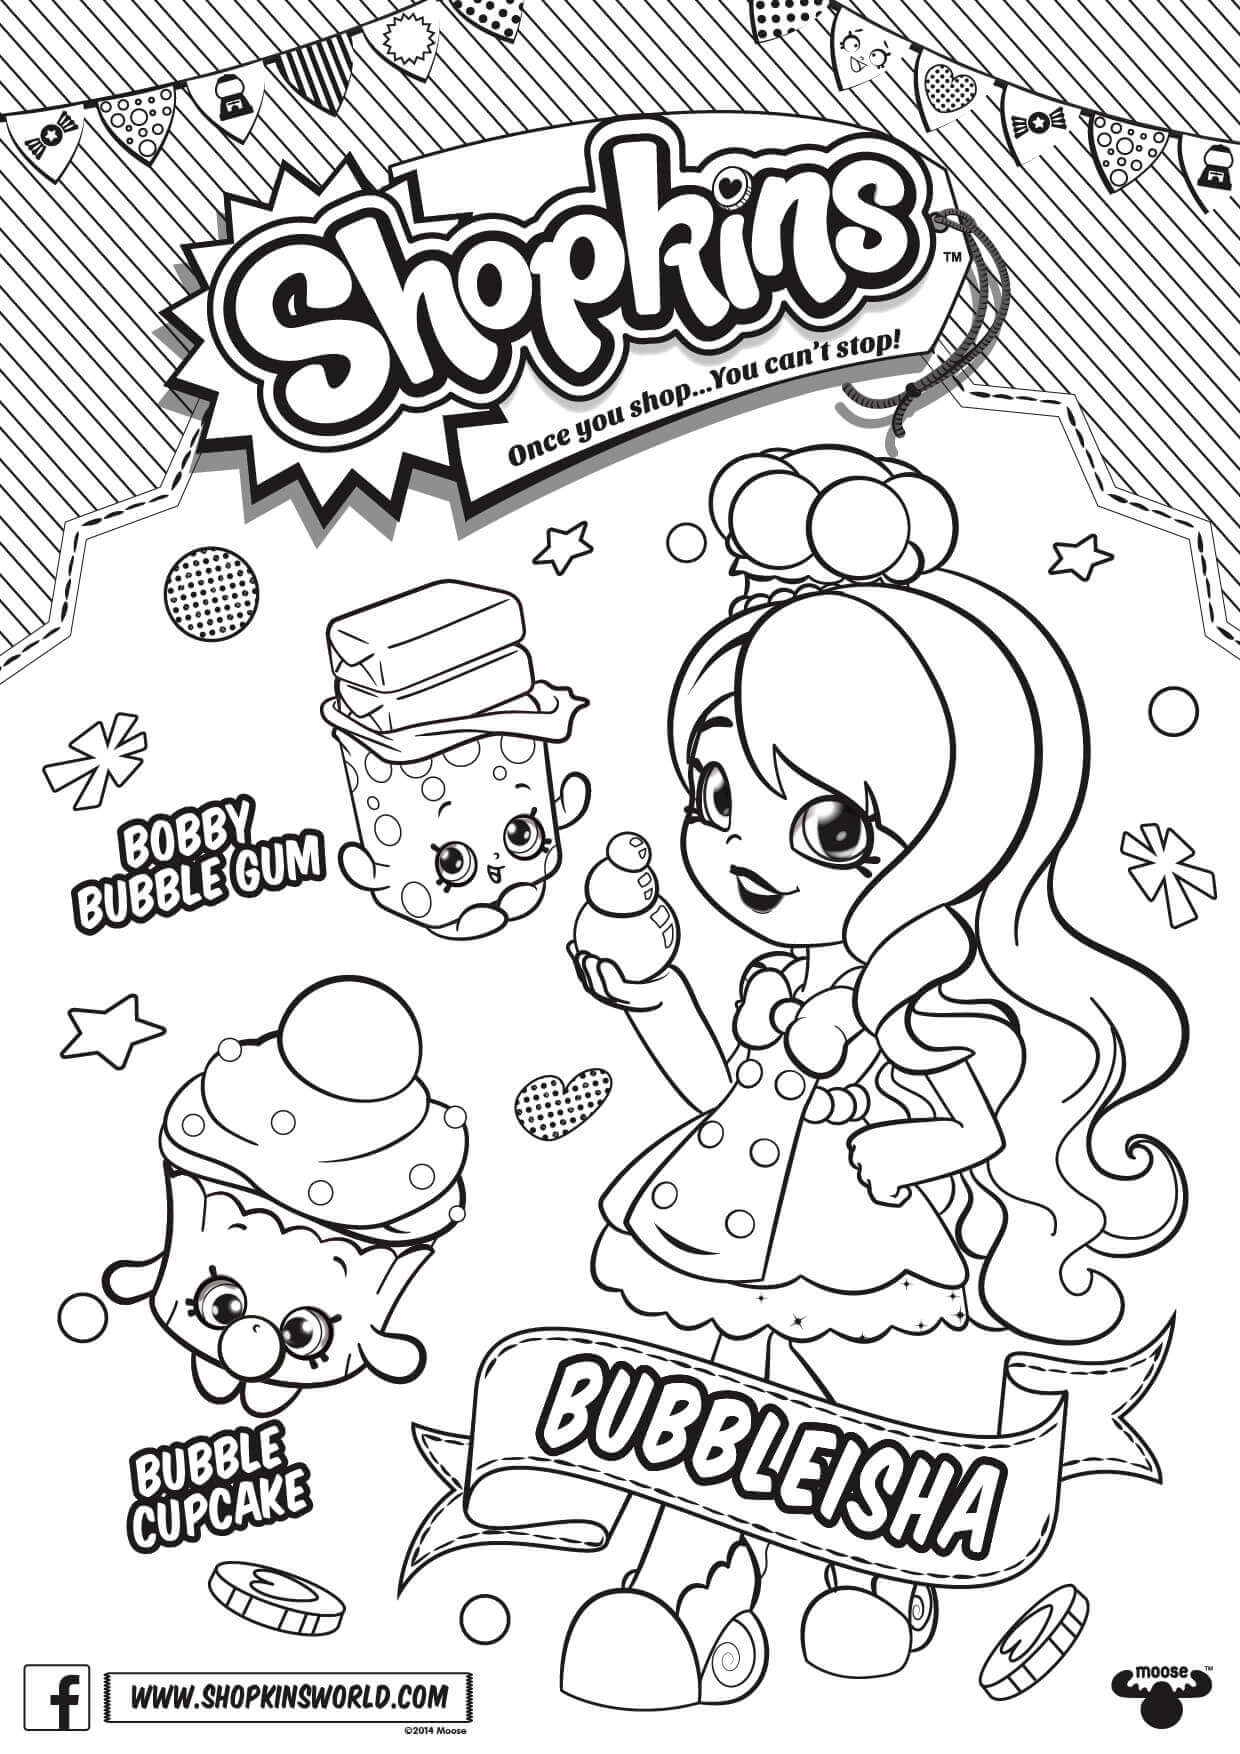 Shopkins Season 6 BubbleIsha Coloring Page